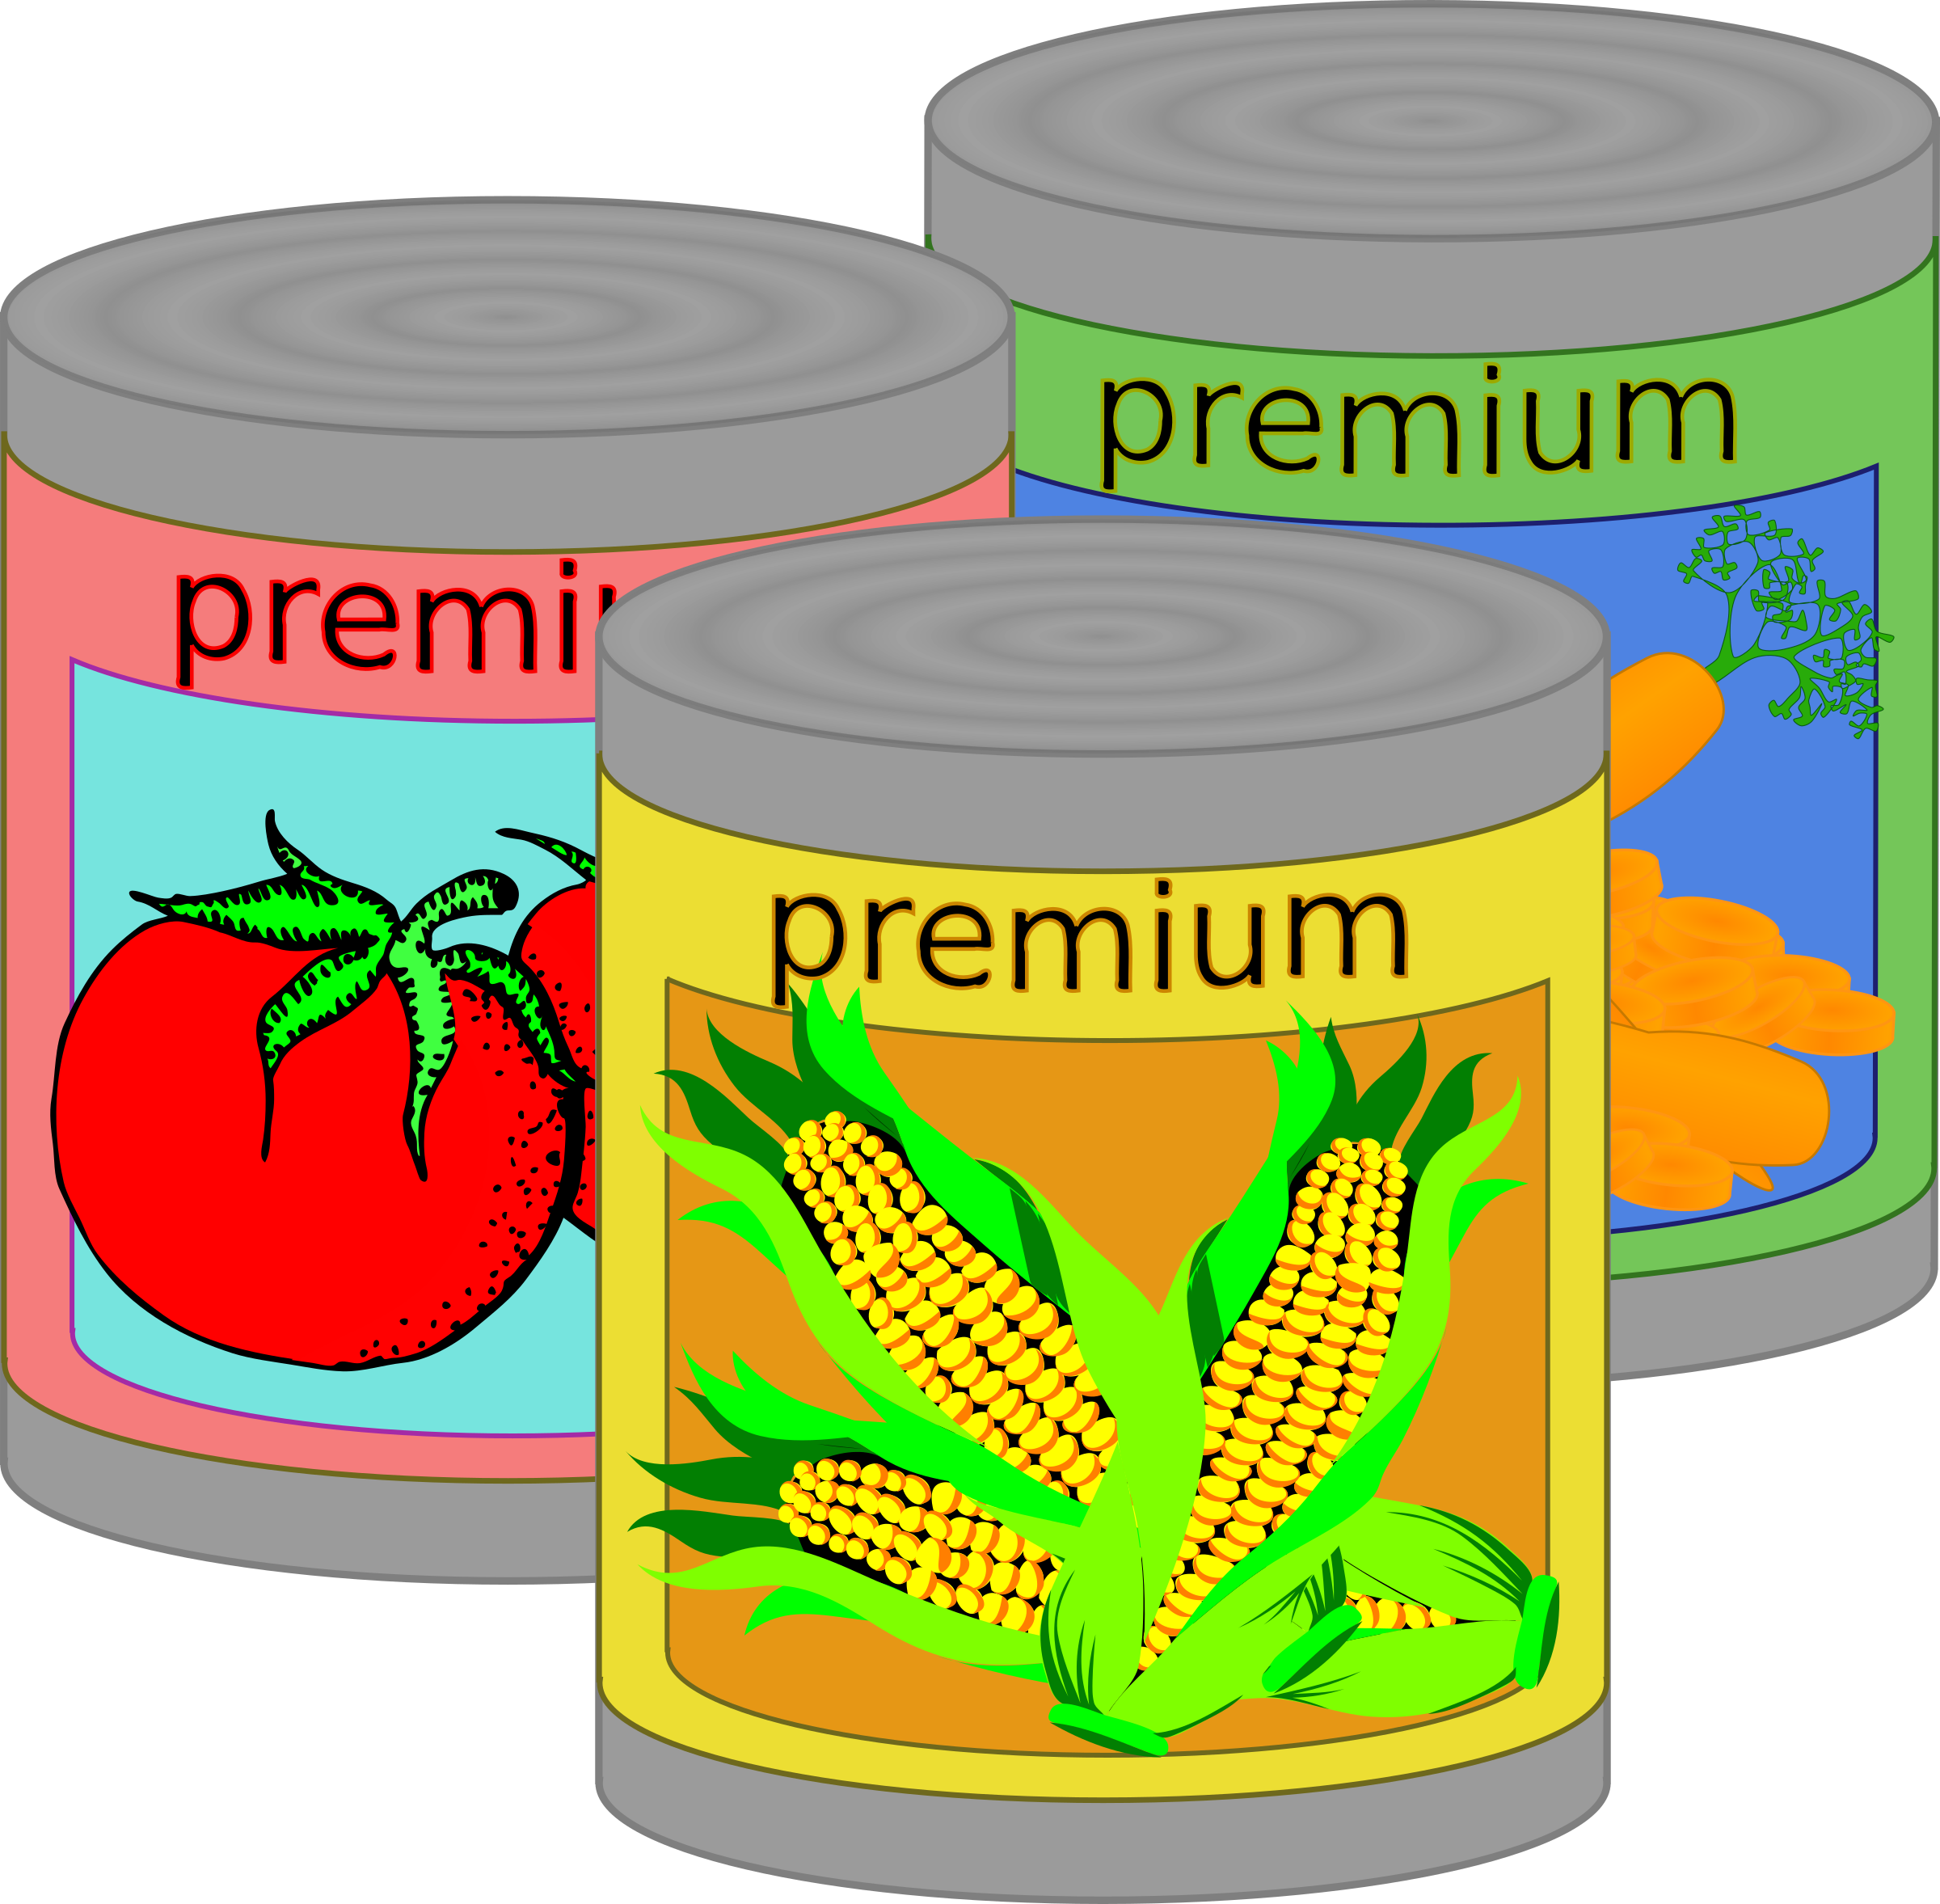 Canned Goods by eady